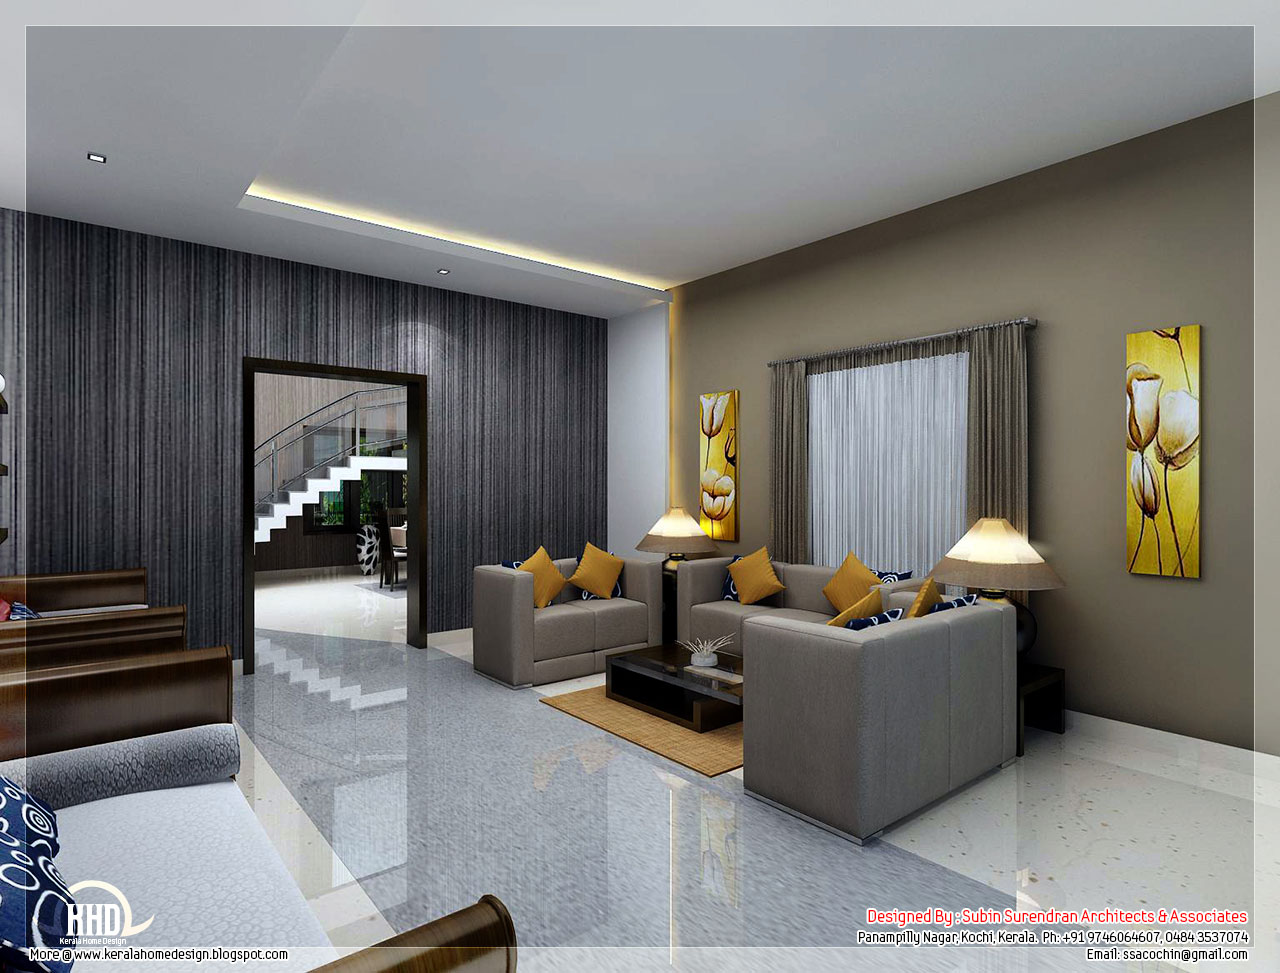 Awesome 3d interior renderings kerala house design for Home interior design ideas uk